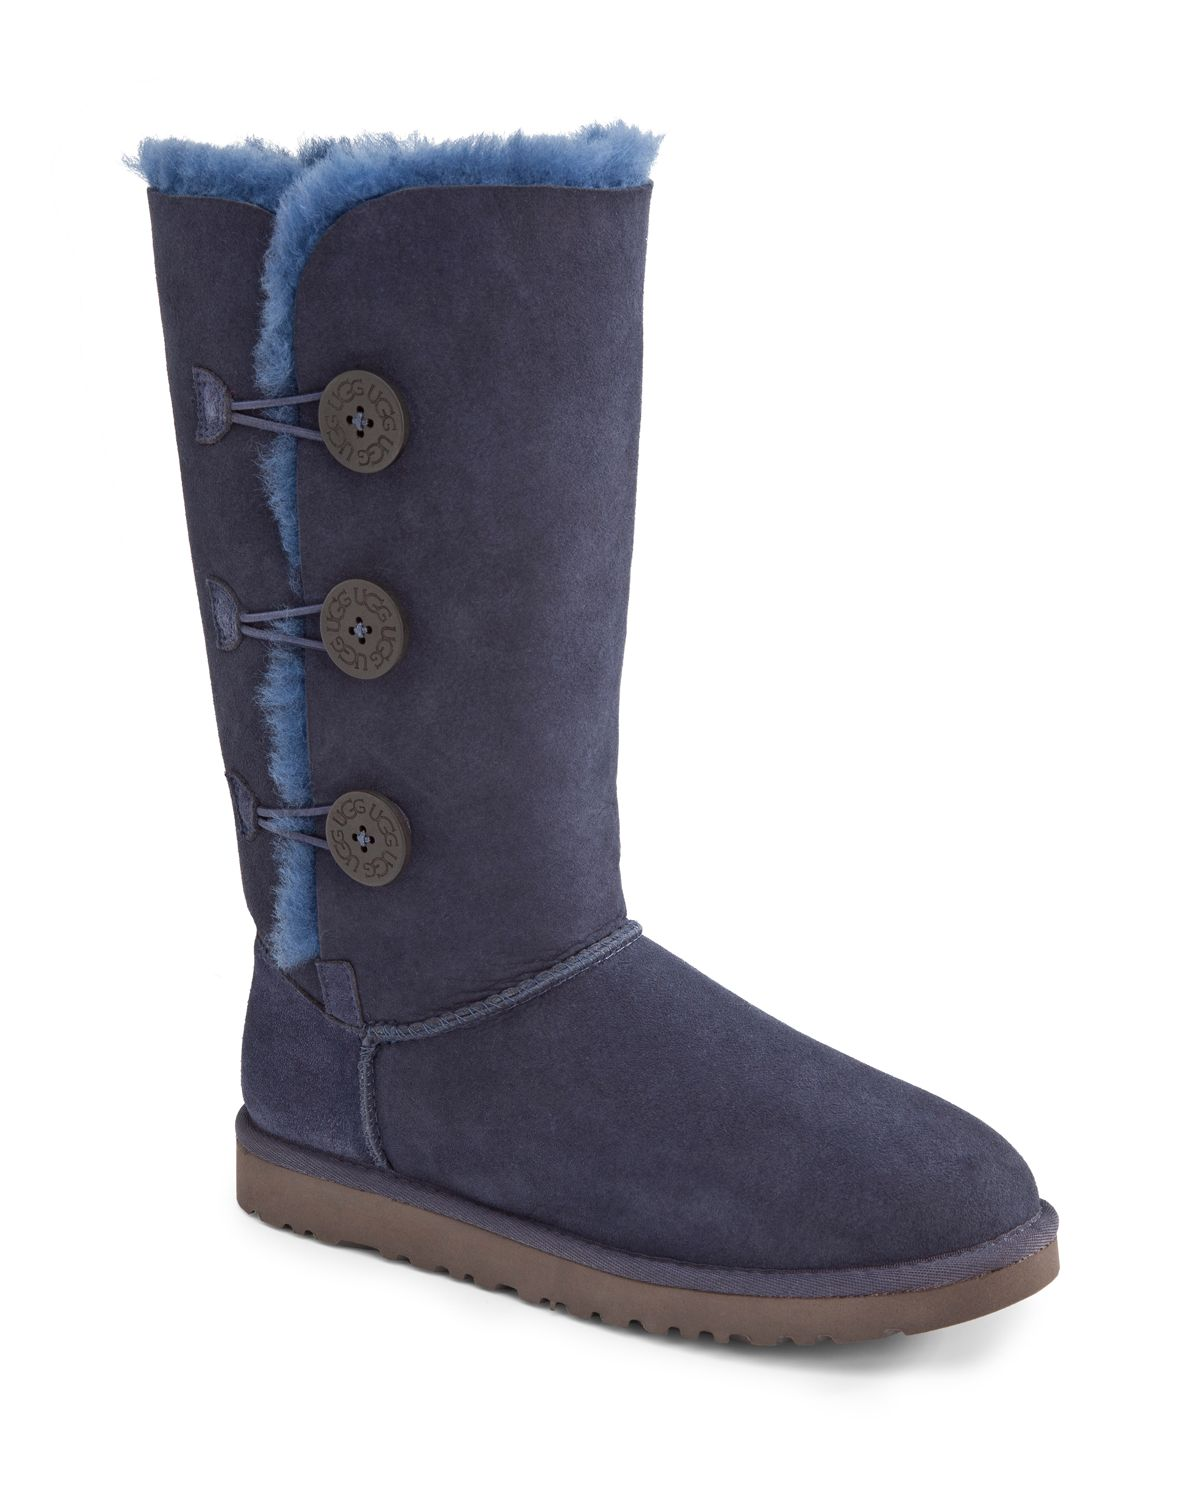 Lyst Ugg Quot Bailey Button Triplet Quot Boots In Blue